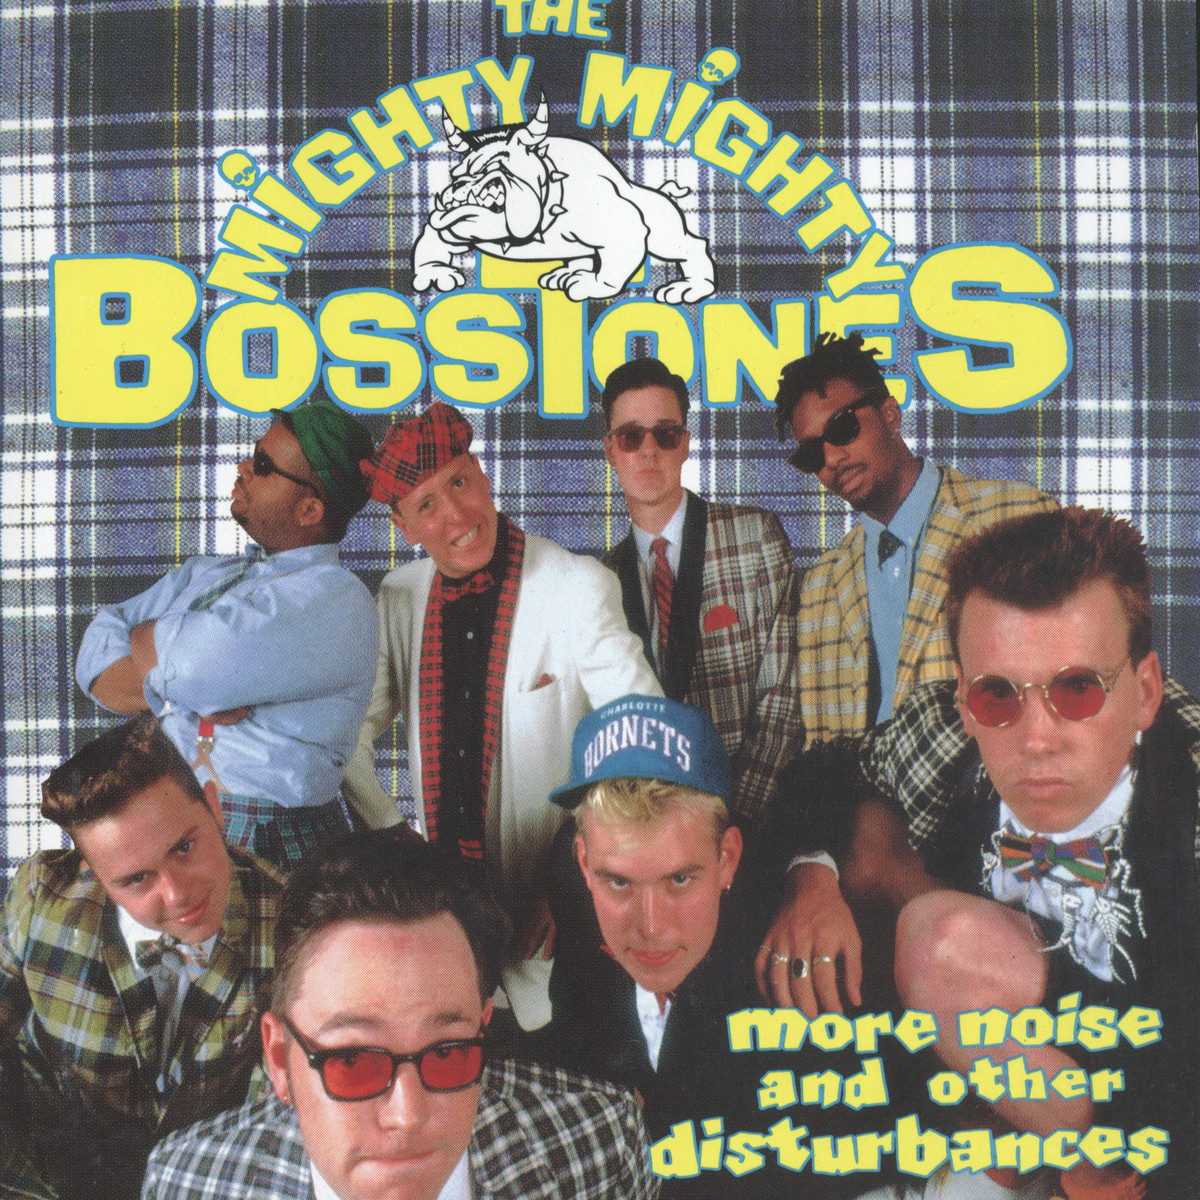 bosstones more noise and other disturbances cover art